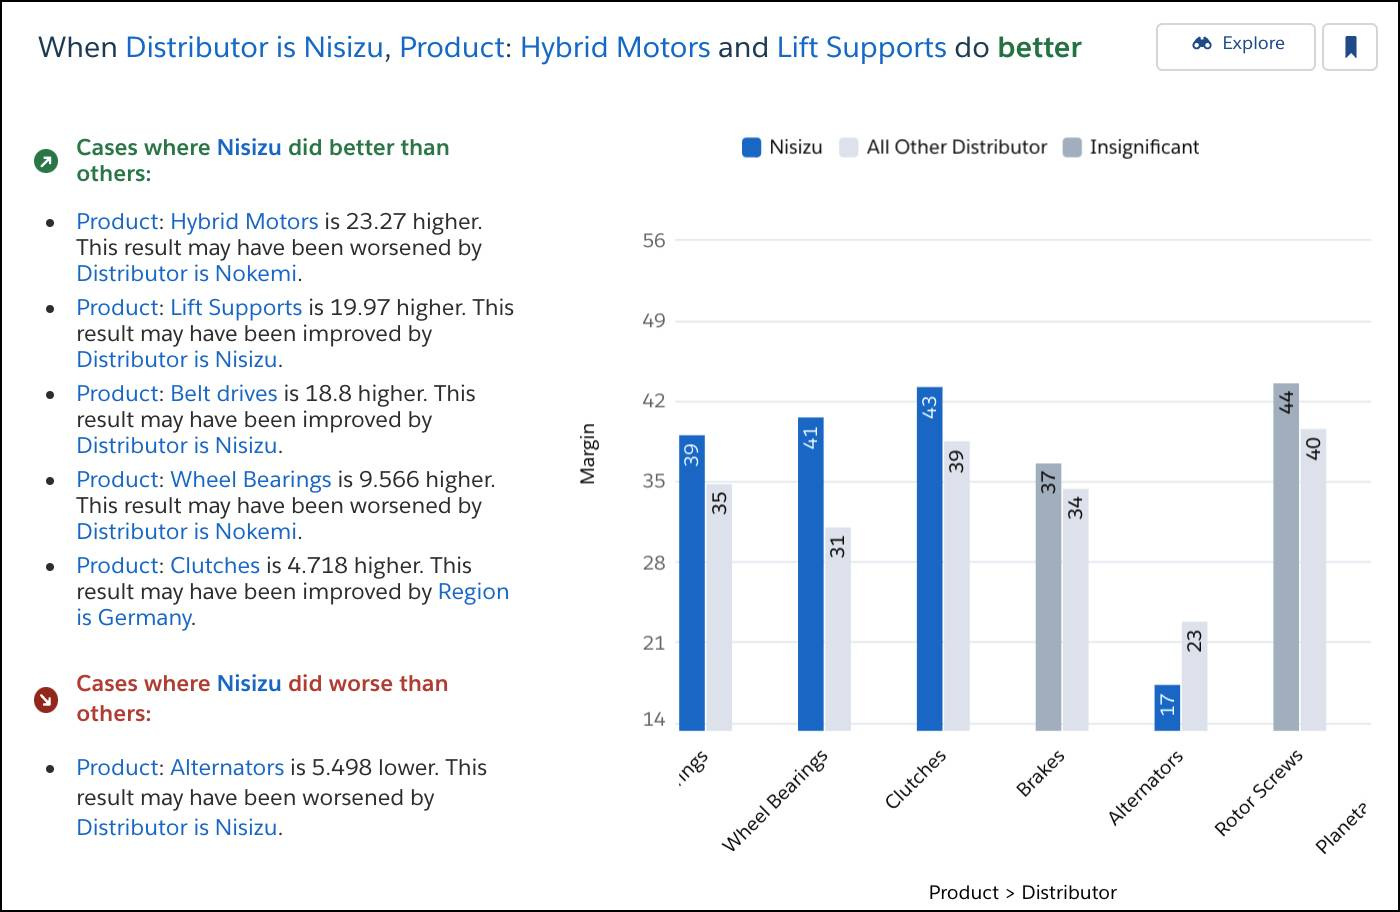 Insight titled: When Distributor is Nisizu, Product: Hybrid Motors and Lift Supports do better